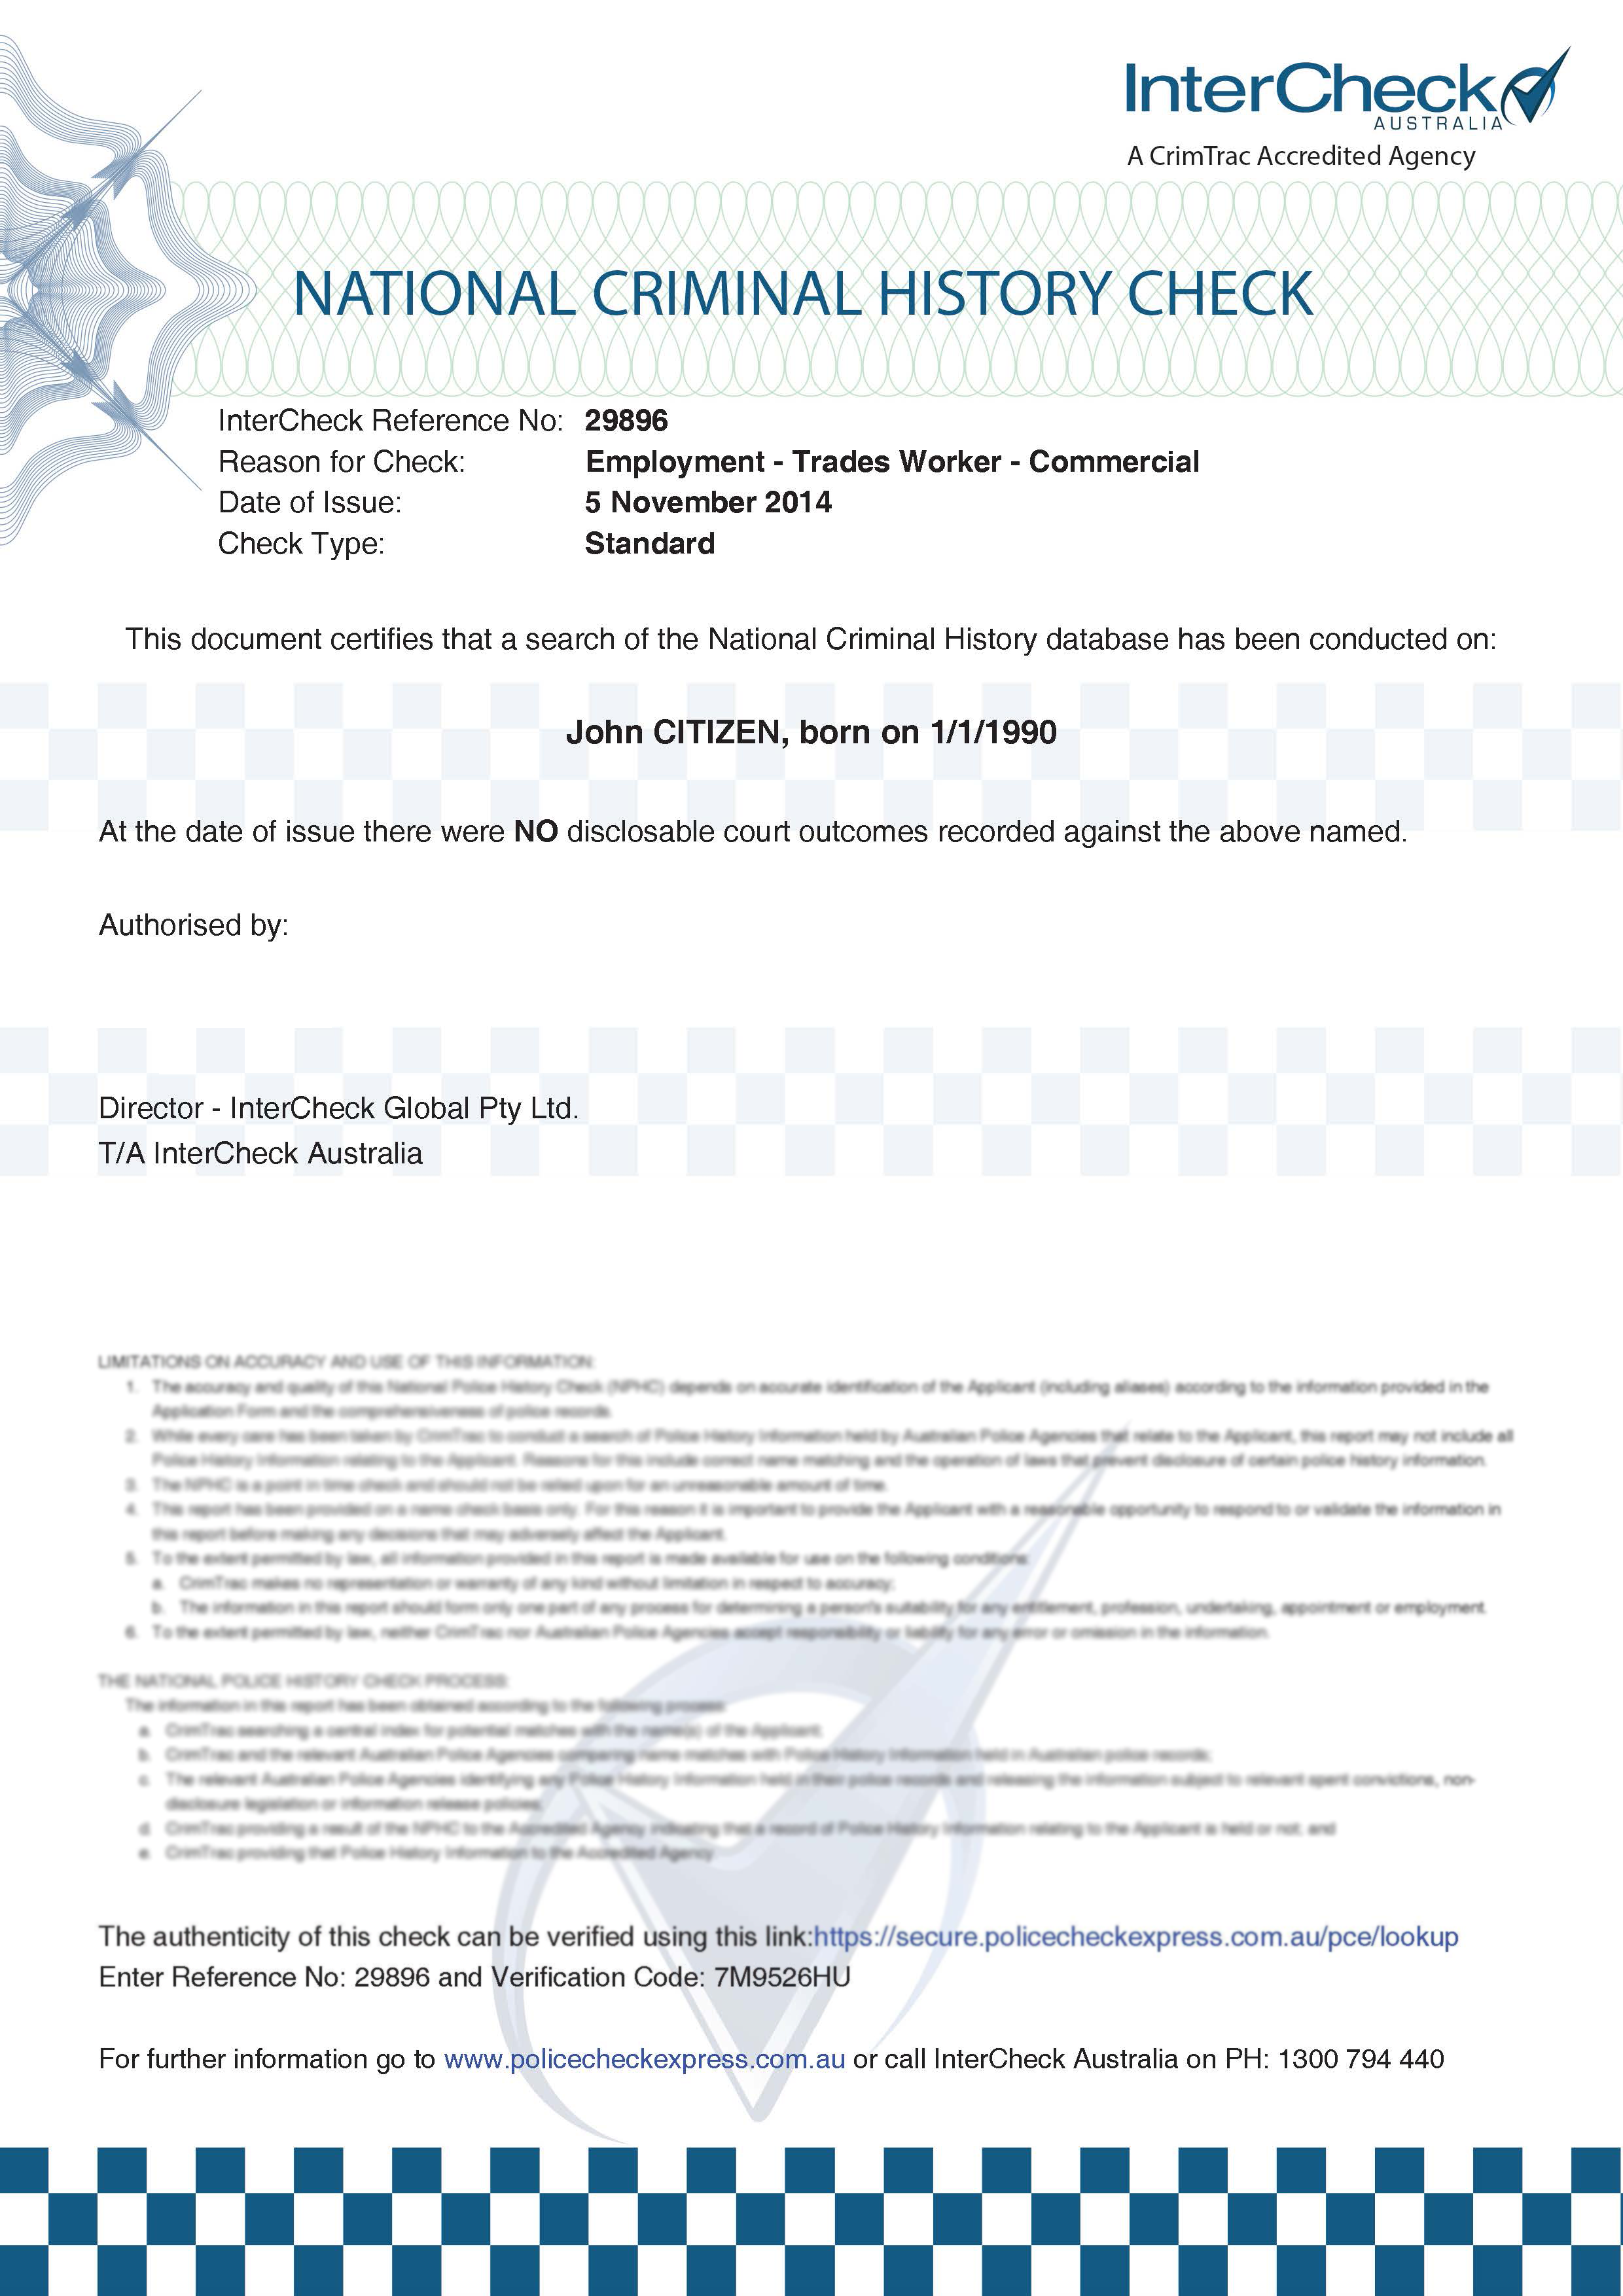 National police checks police clearance act policecheck express view the sample of the police certificate here xflitez Choice Image